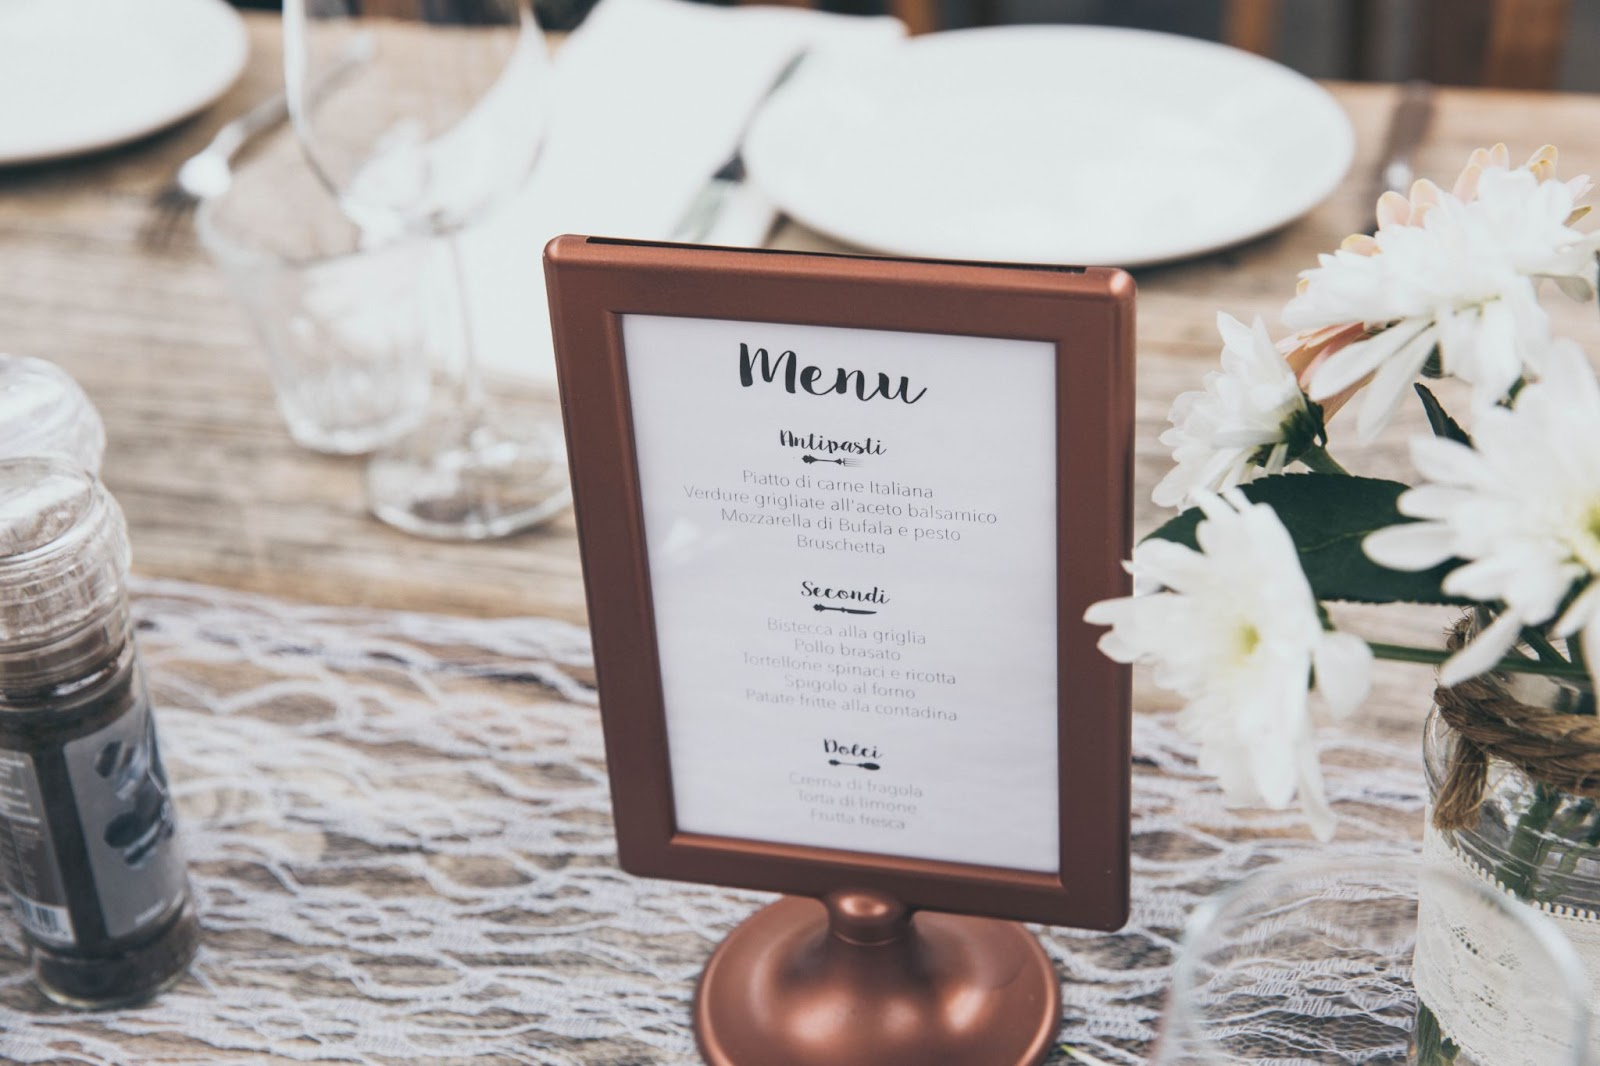 Catered menu in a stand on a decorated table